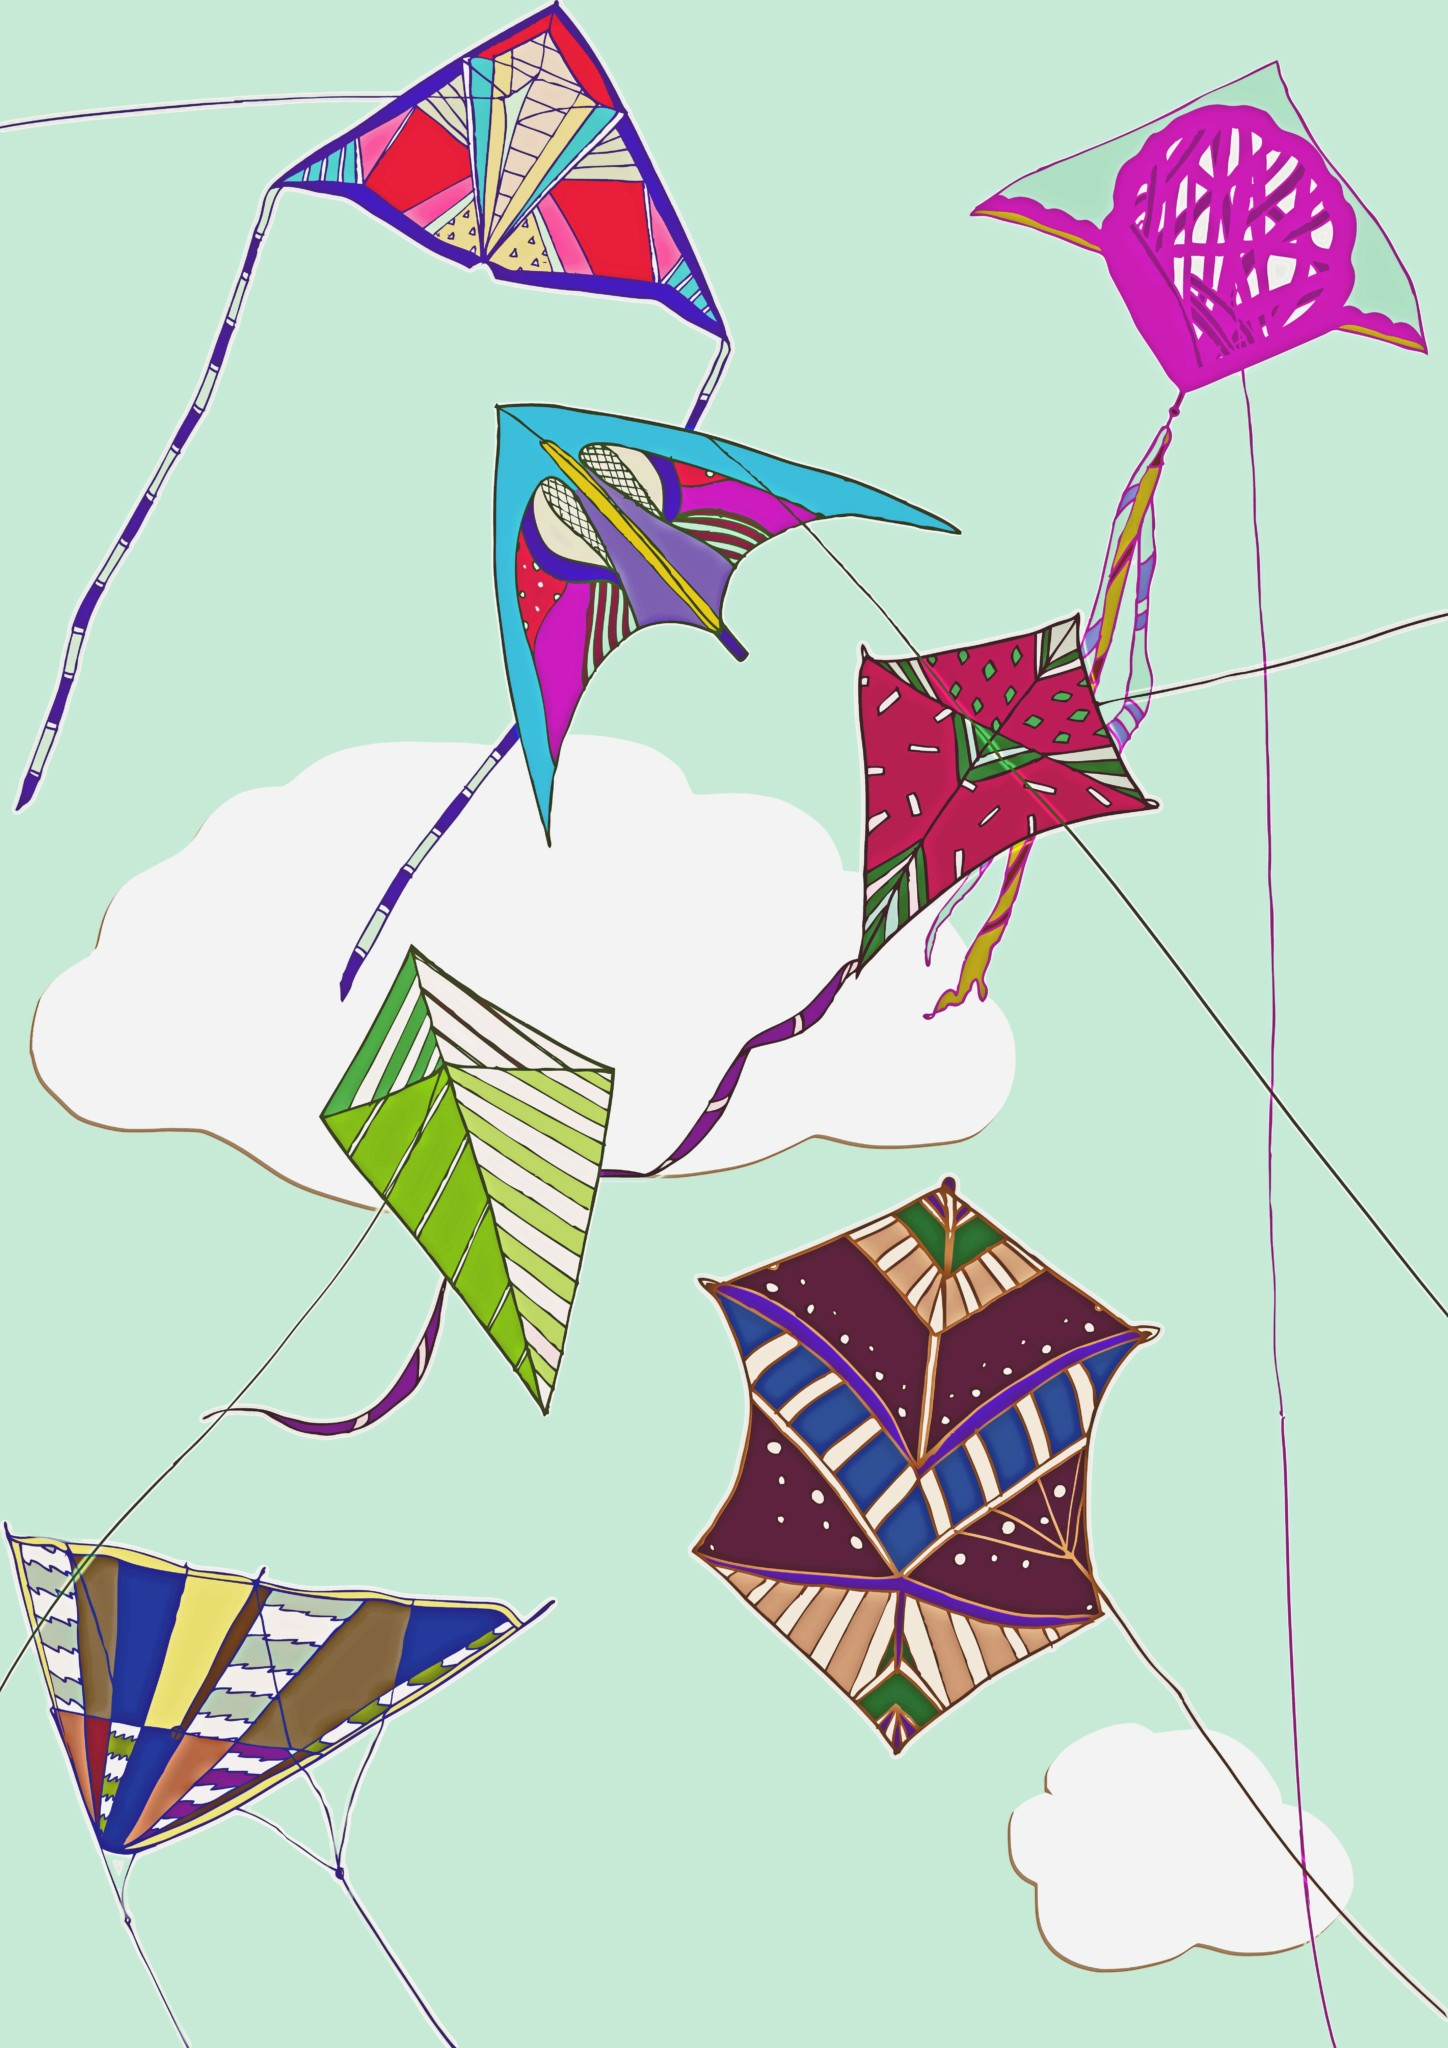 2D Flying Kite Collection Illustration